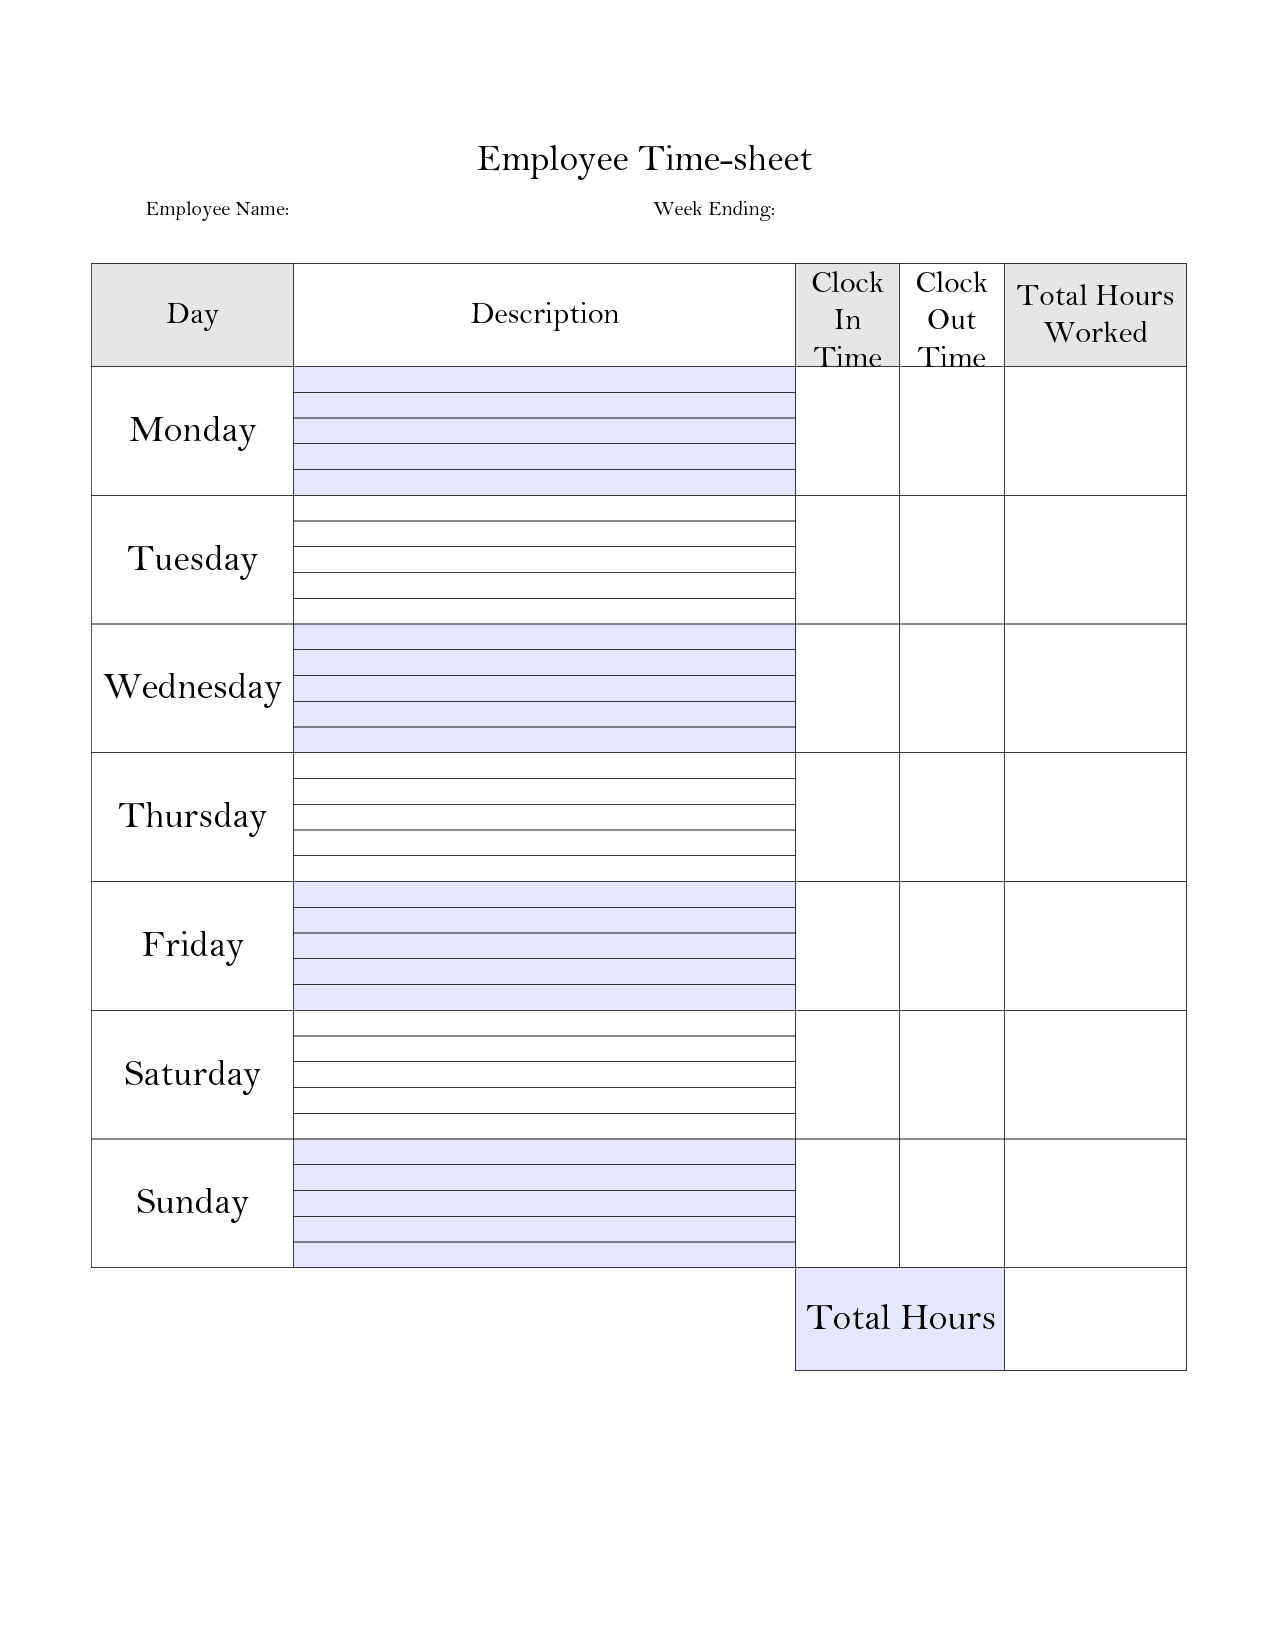 Printable Weekly Employee Time Card - Google Search | Planner Stuff - Time Card Templates Free Printable